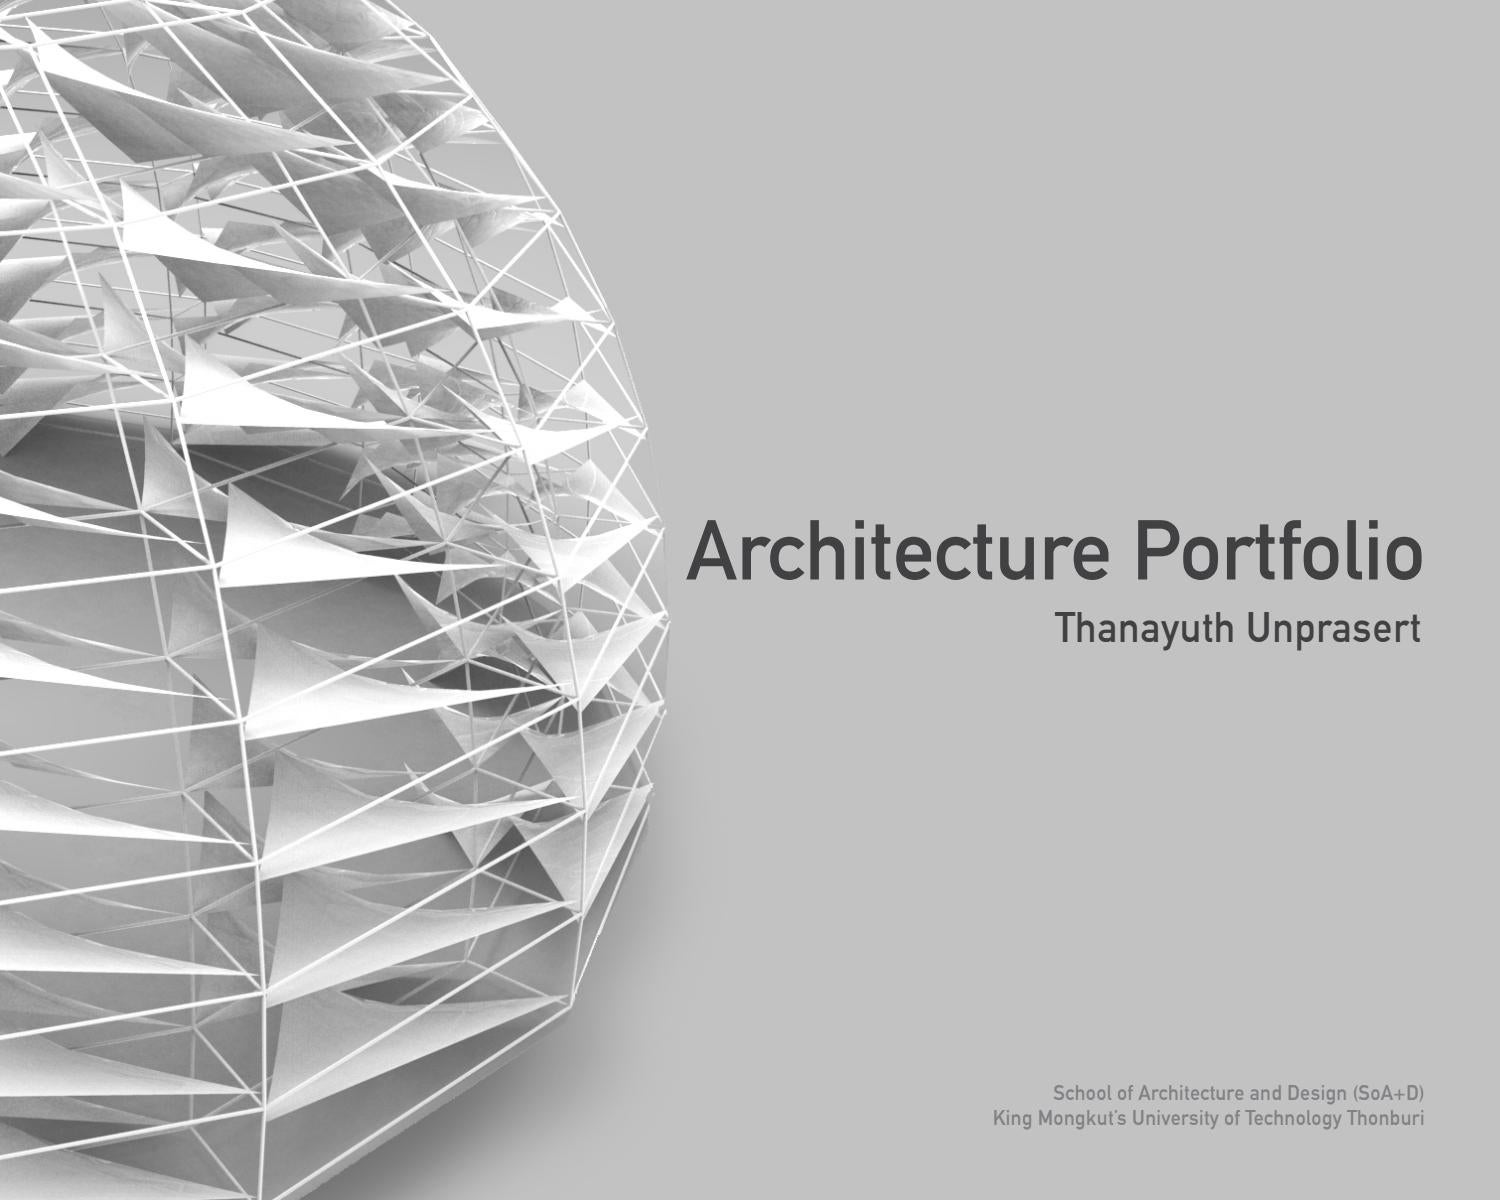 peam thanayuth architecture portfolio by peam thanayuth